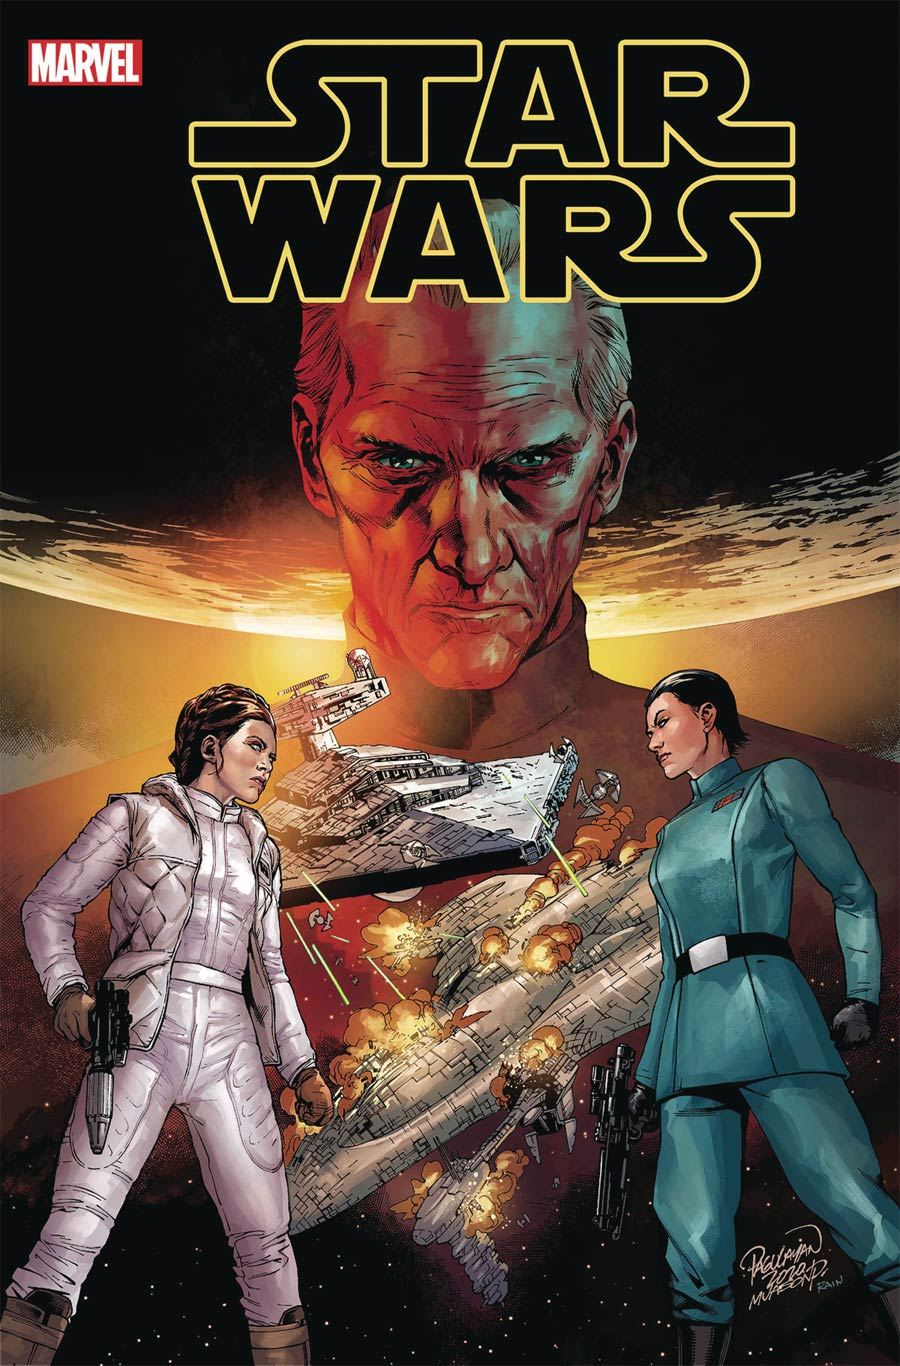 Star Wars Vol 5 #7 Cover A Regular Carlo Pagulayan Cover